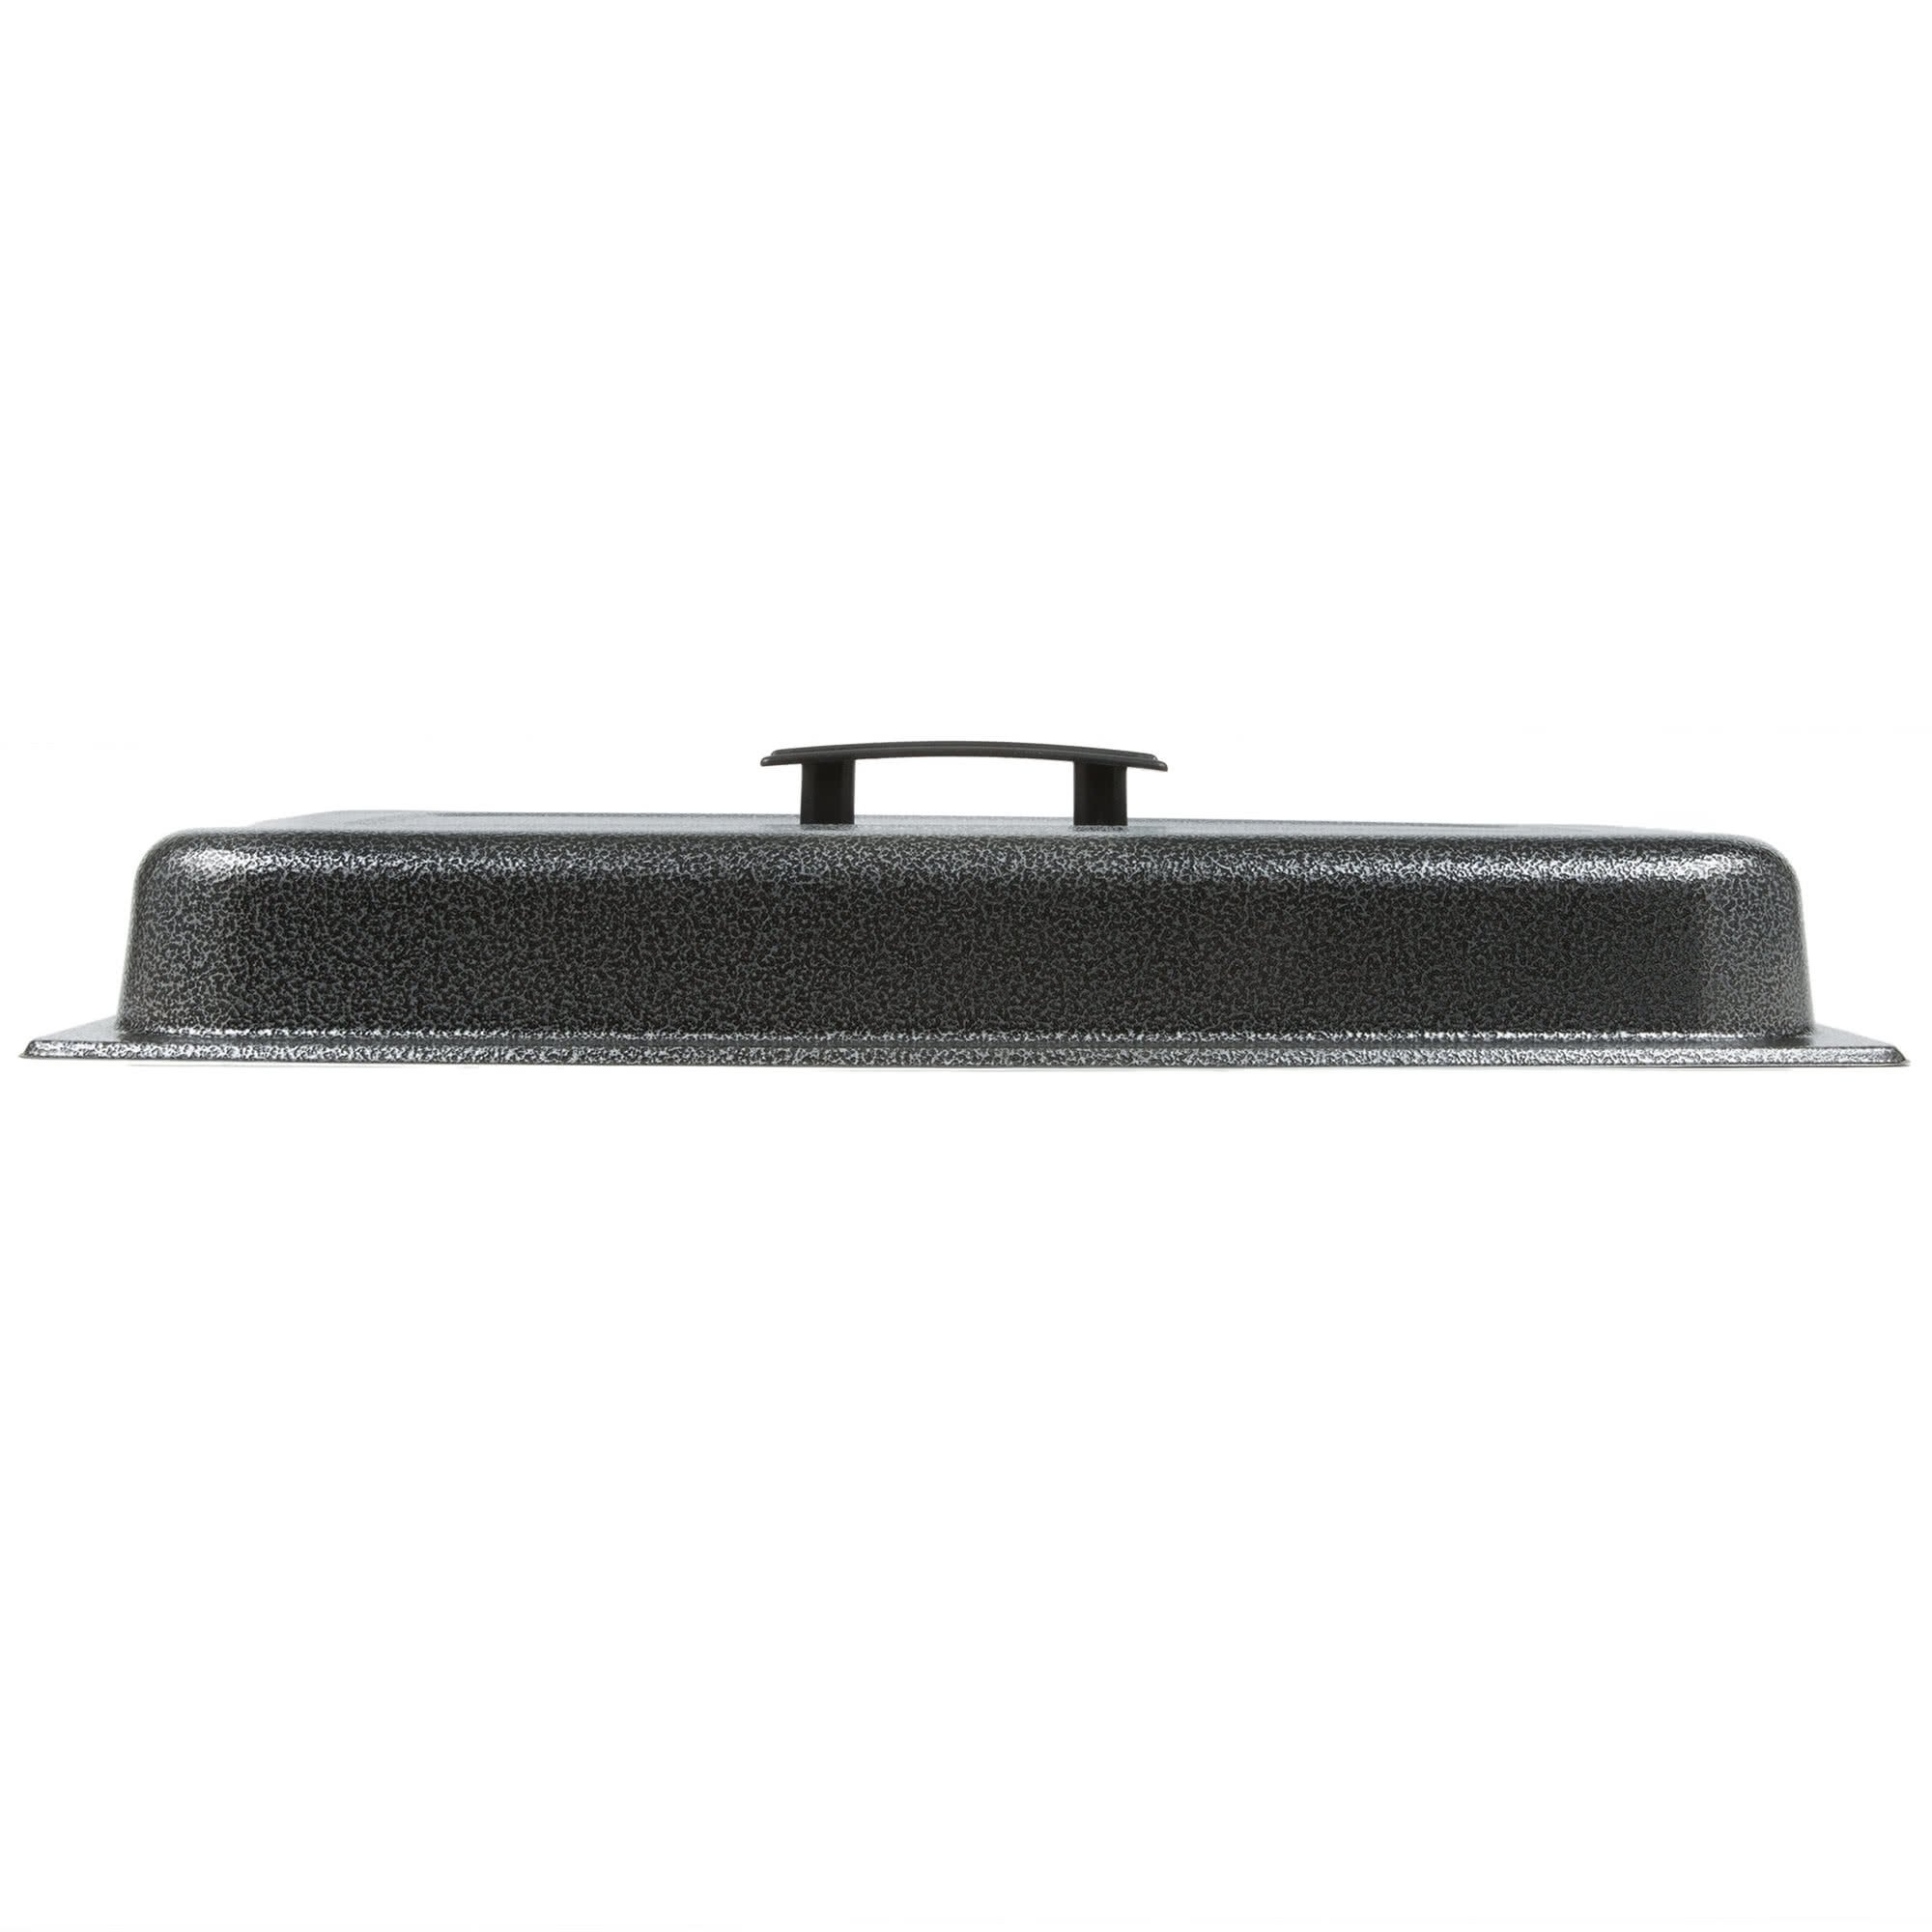 TableTop king 70114 Silver Vein Full Size Chafer Cover